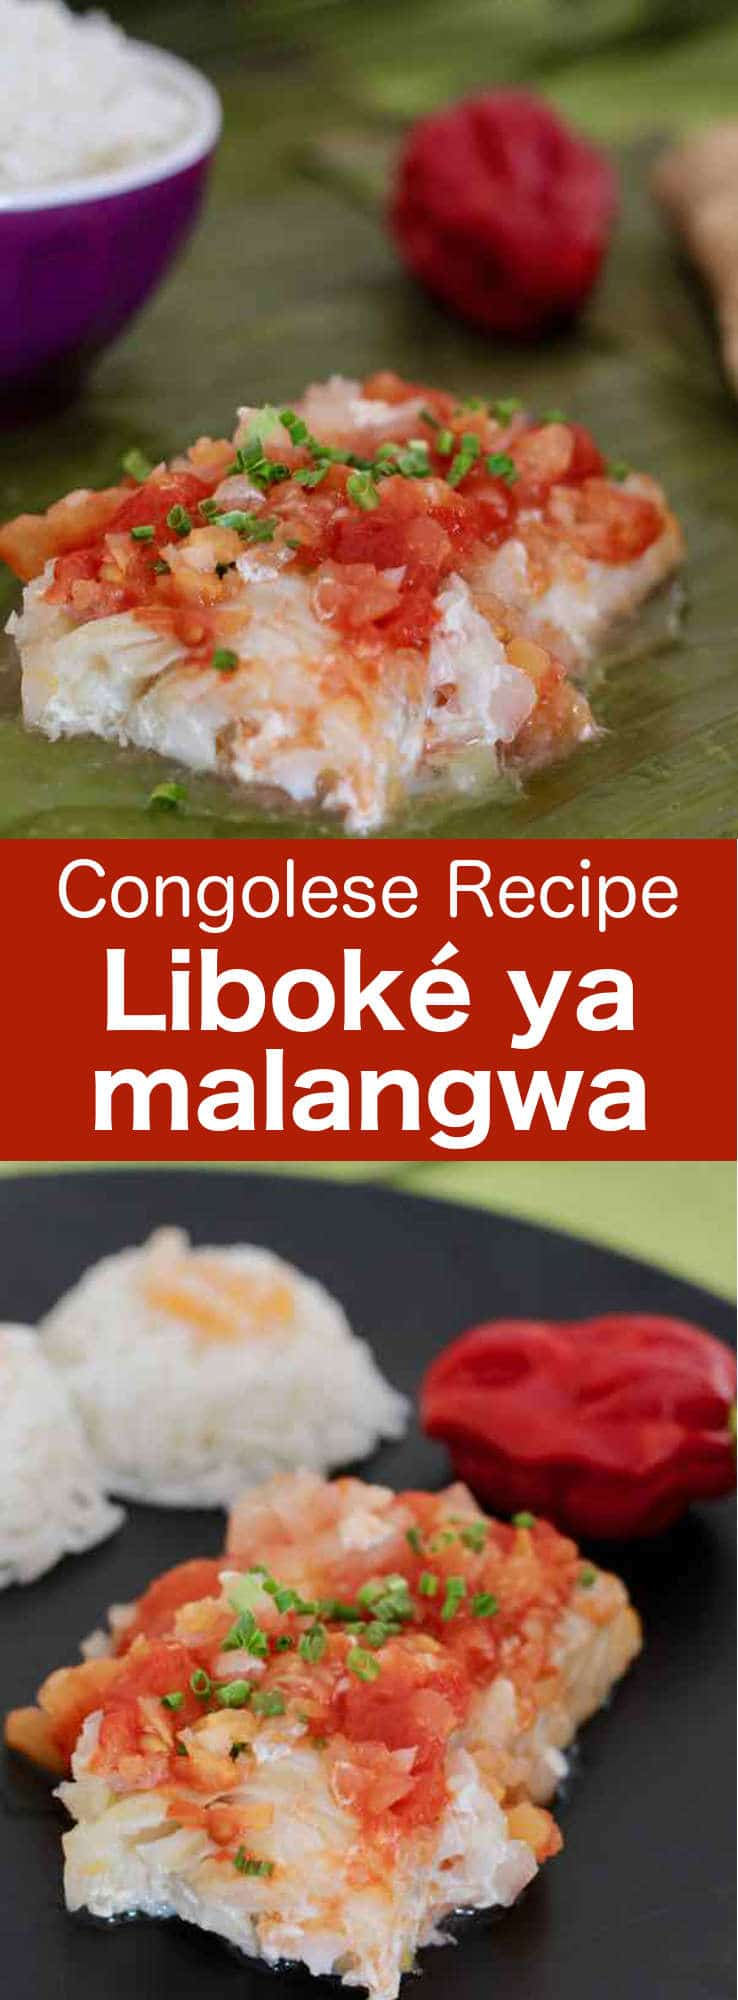 Liboke ya malangwa is a traditional dish prepared with pangasius fish from the Democratic Republic of the Congo.